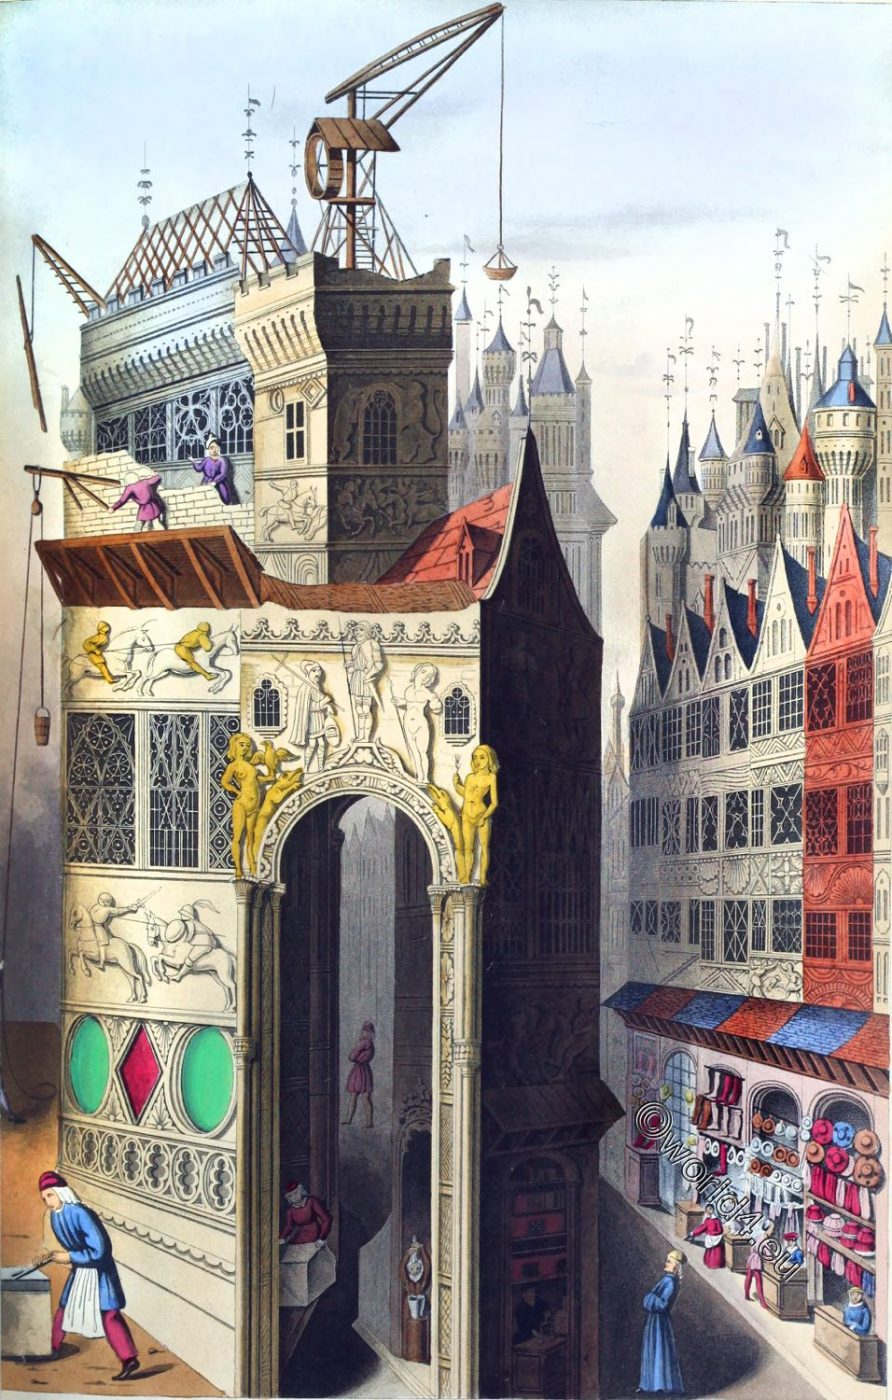 Troy, 15th century, Middle ages, architecture